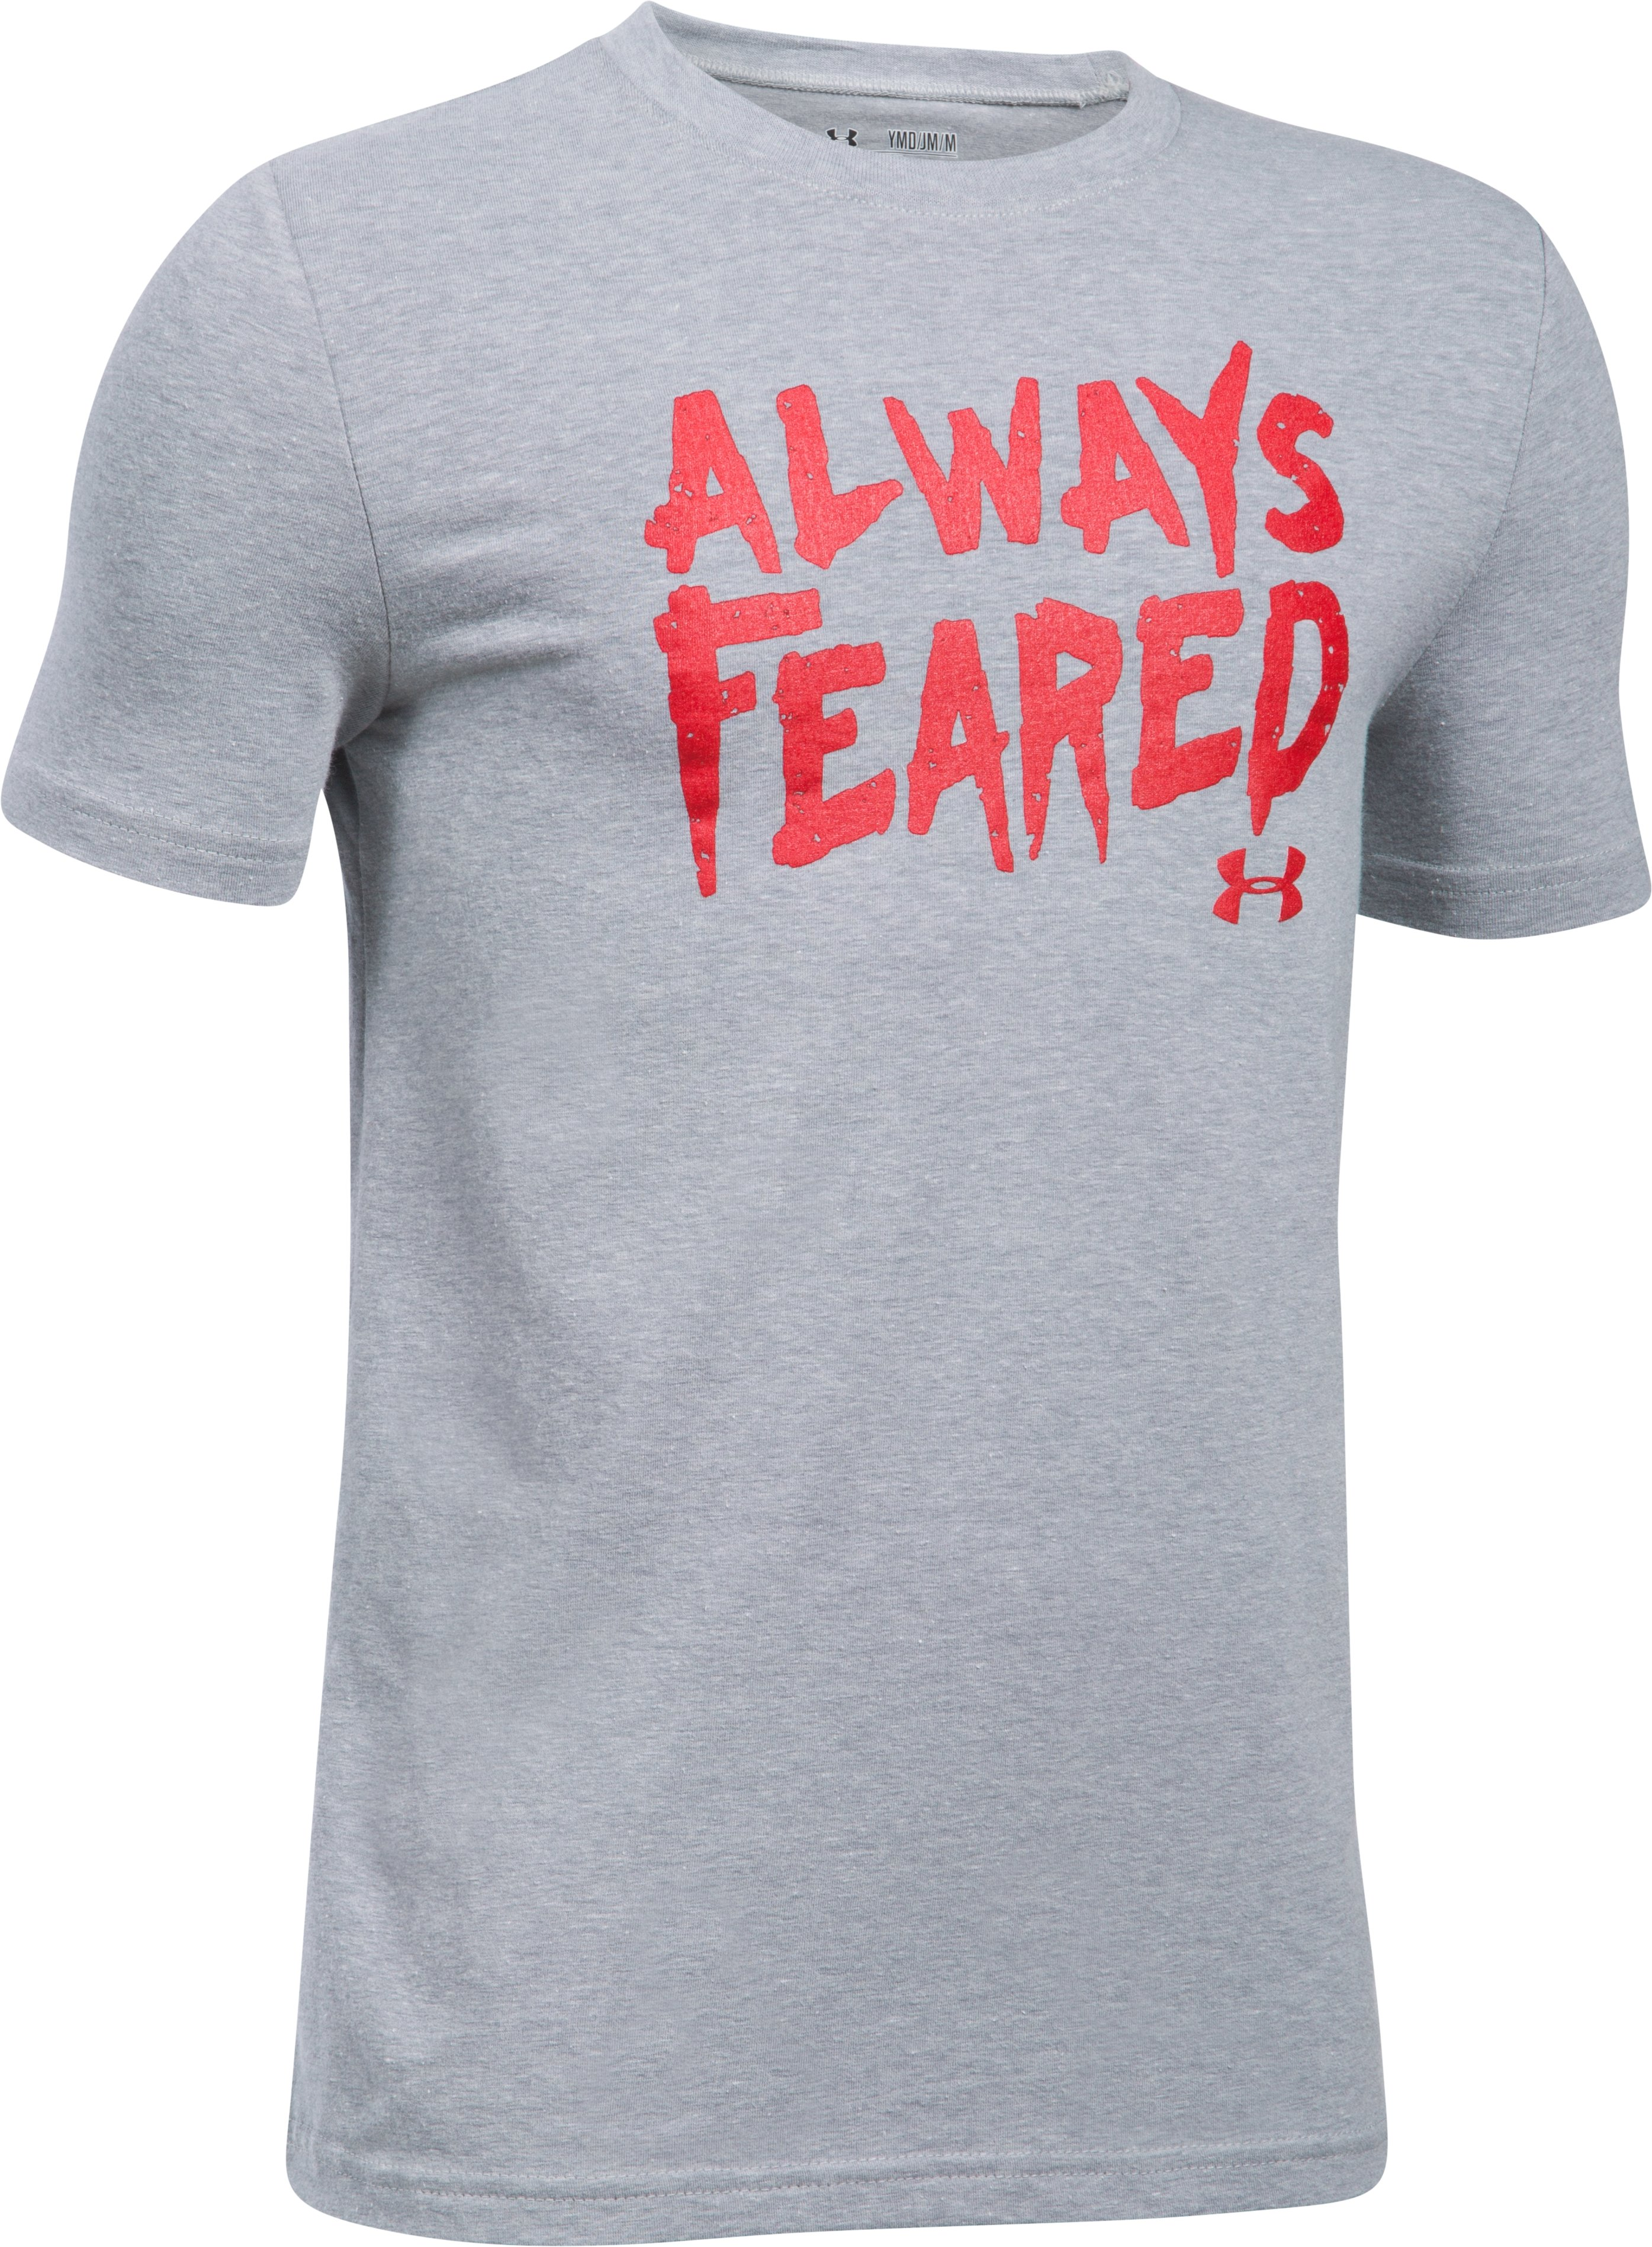 Boys' UA Feared Always T-Shirt, STEEL LIGHT HEATHER